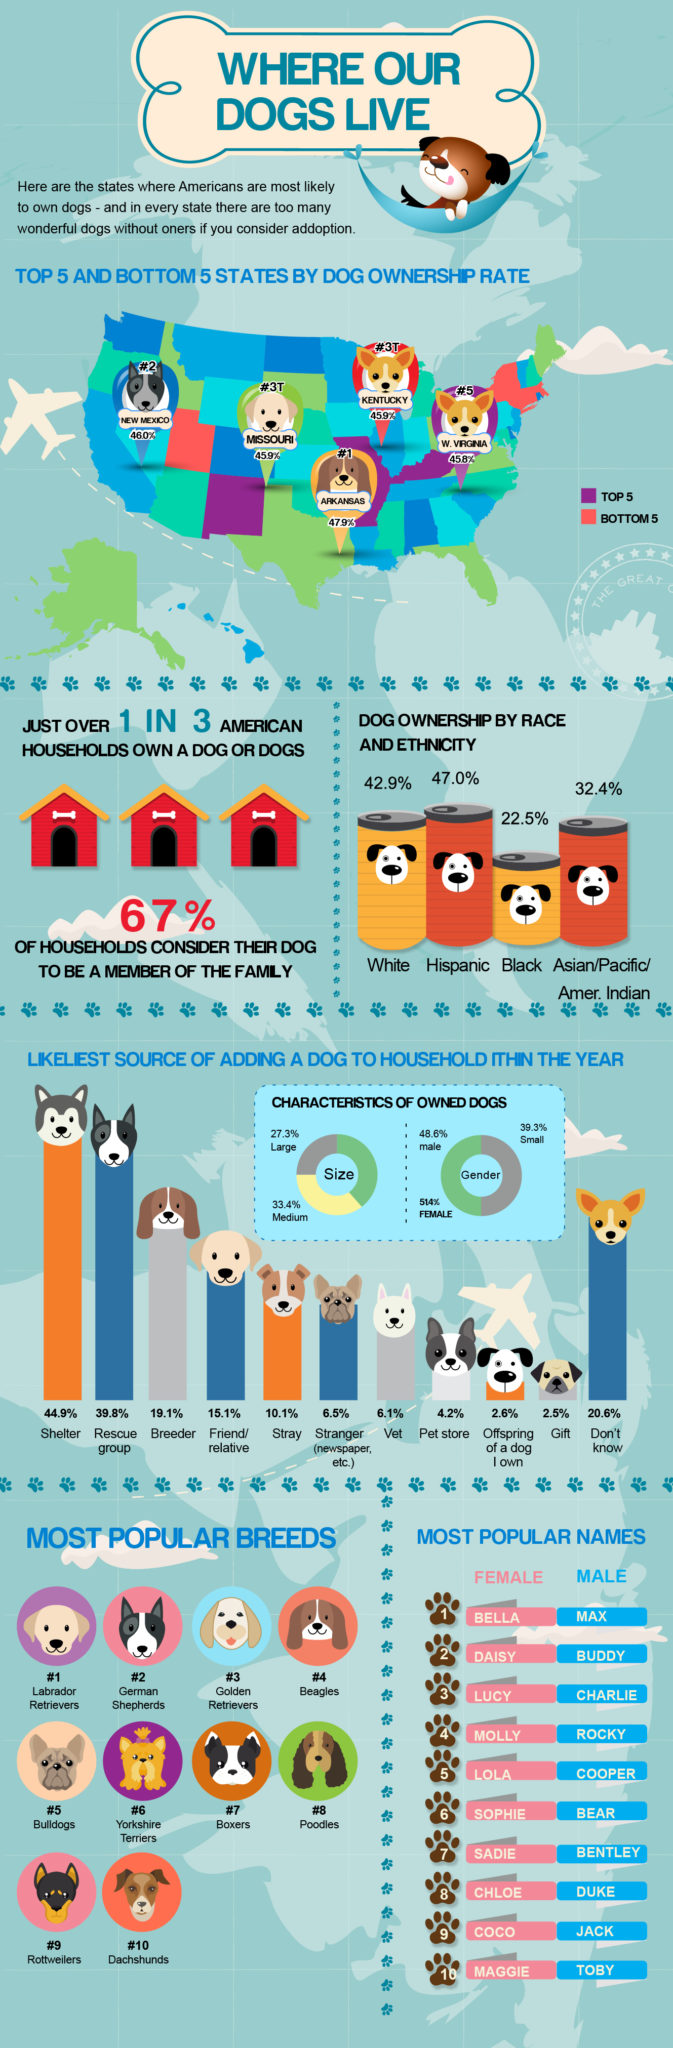 where do all our dogs live?